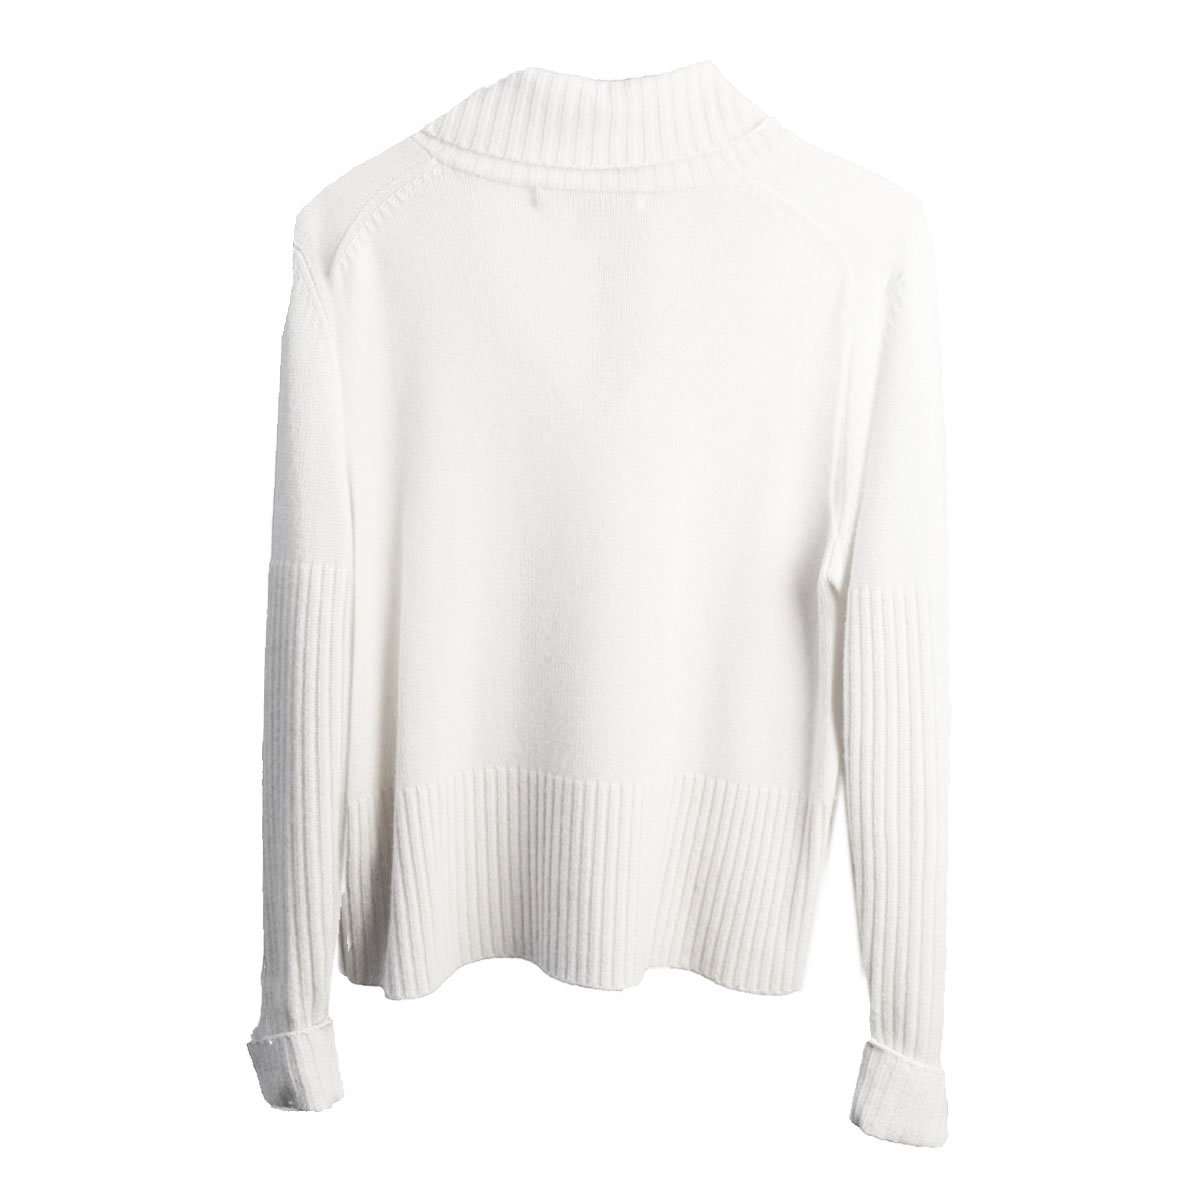 Vintage White Cashmere Sweater 2 by Ellen Tracy Company